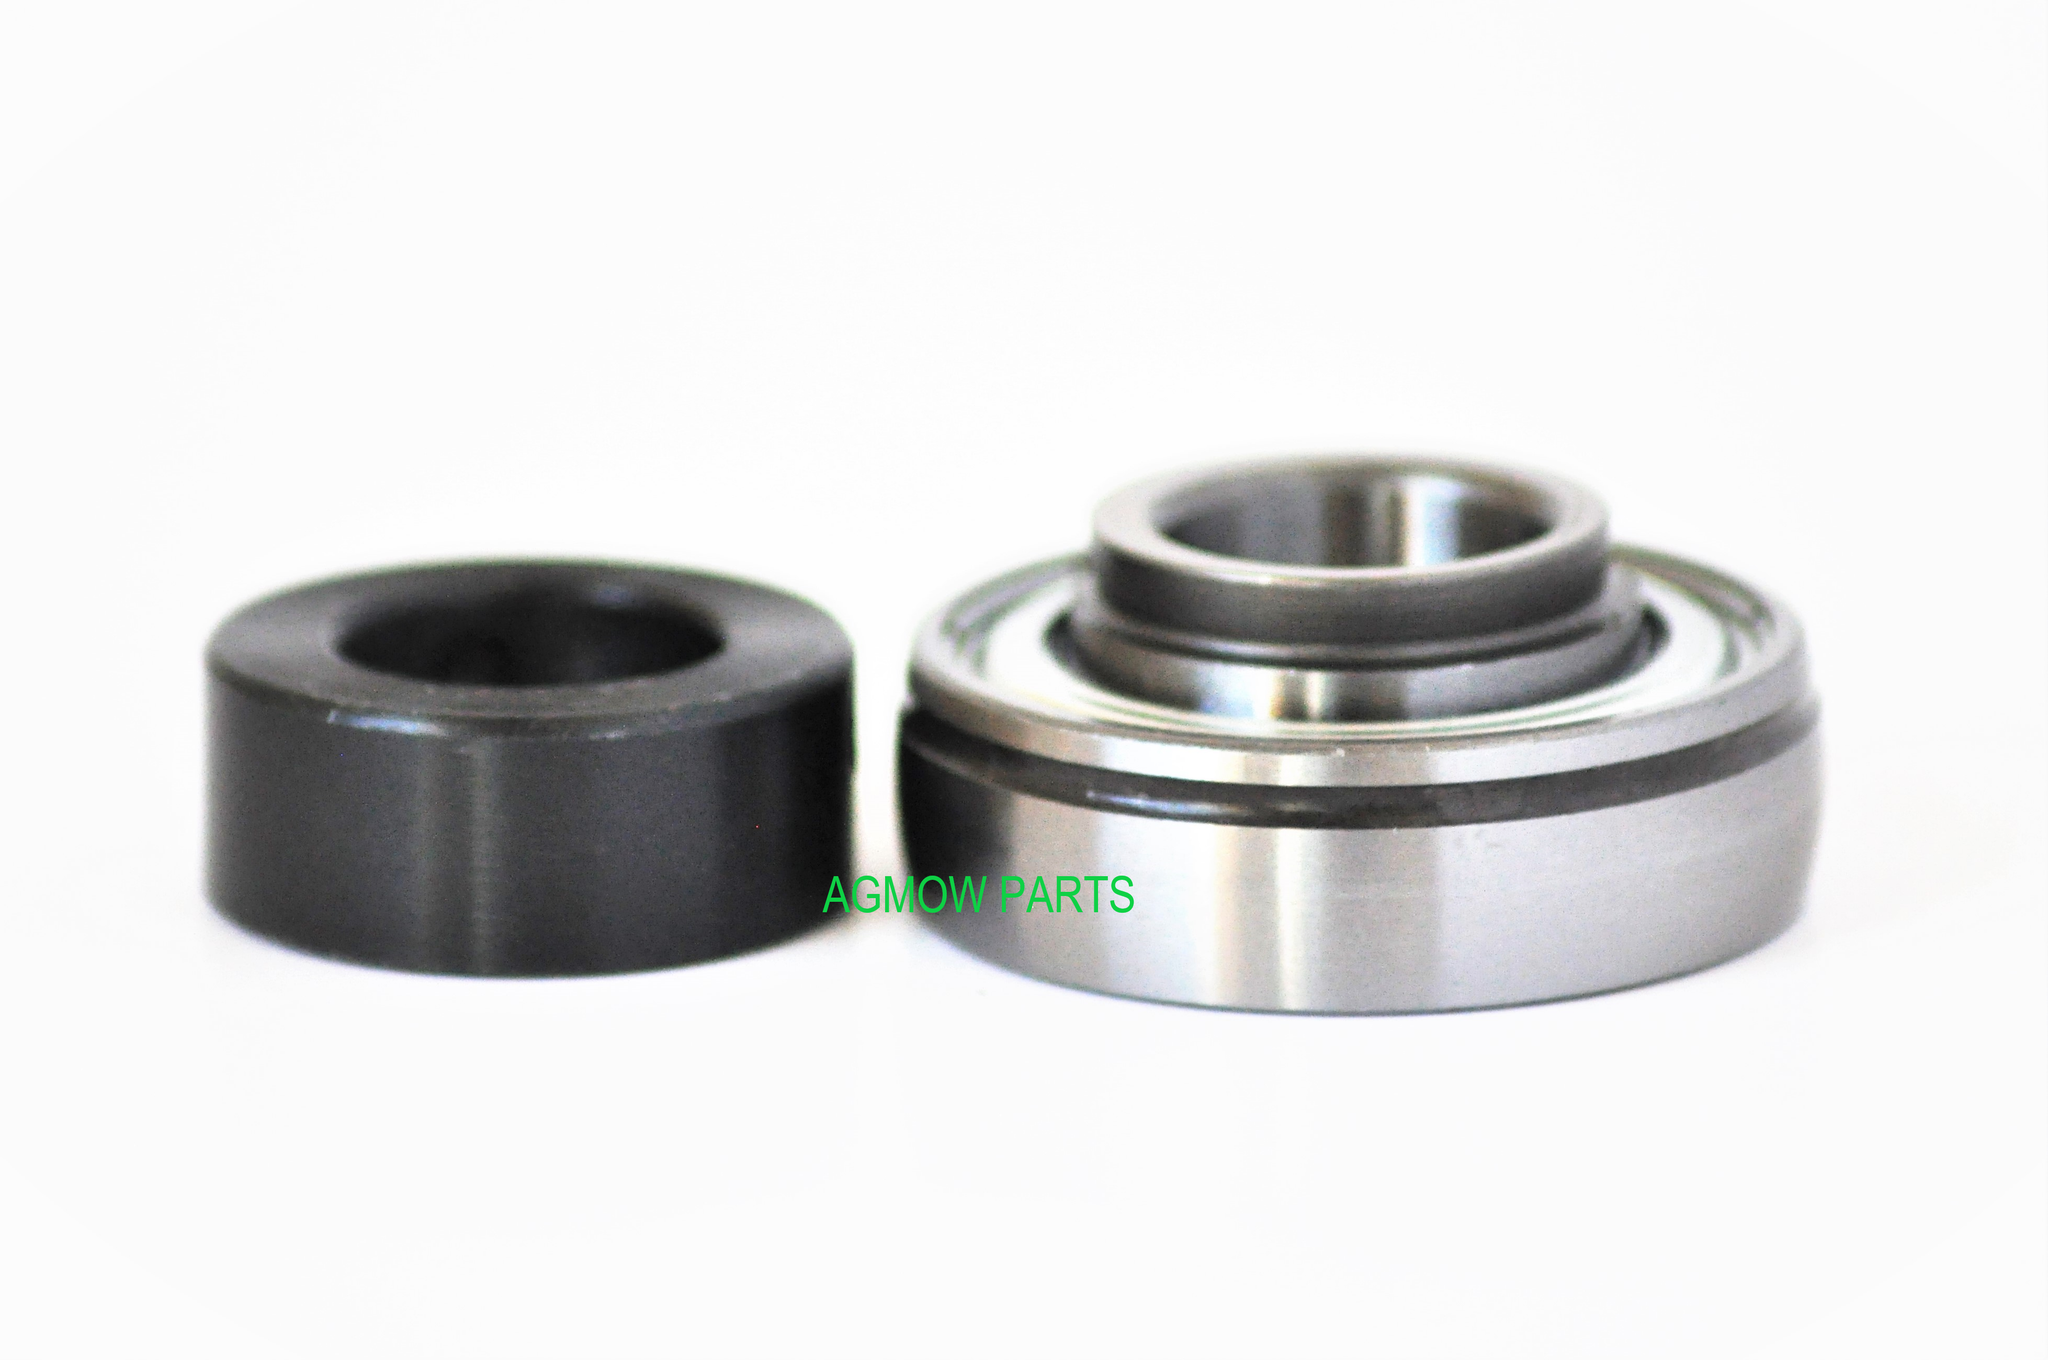 3-3//16 Shaft Size SKF SNW 18X3.3//16 Adapter Sleeve Inch 22200K Series Roller Bearings Used With 1200K and 1300K Series Ball Bearings